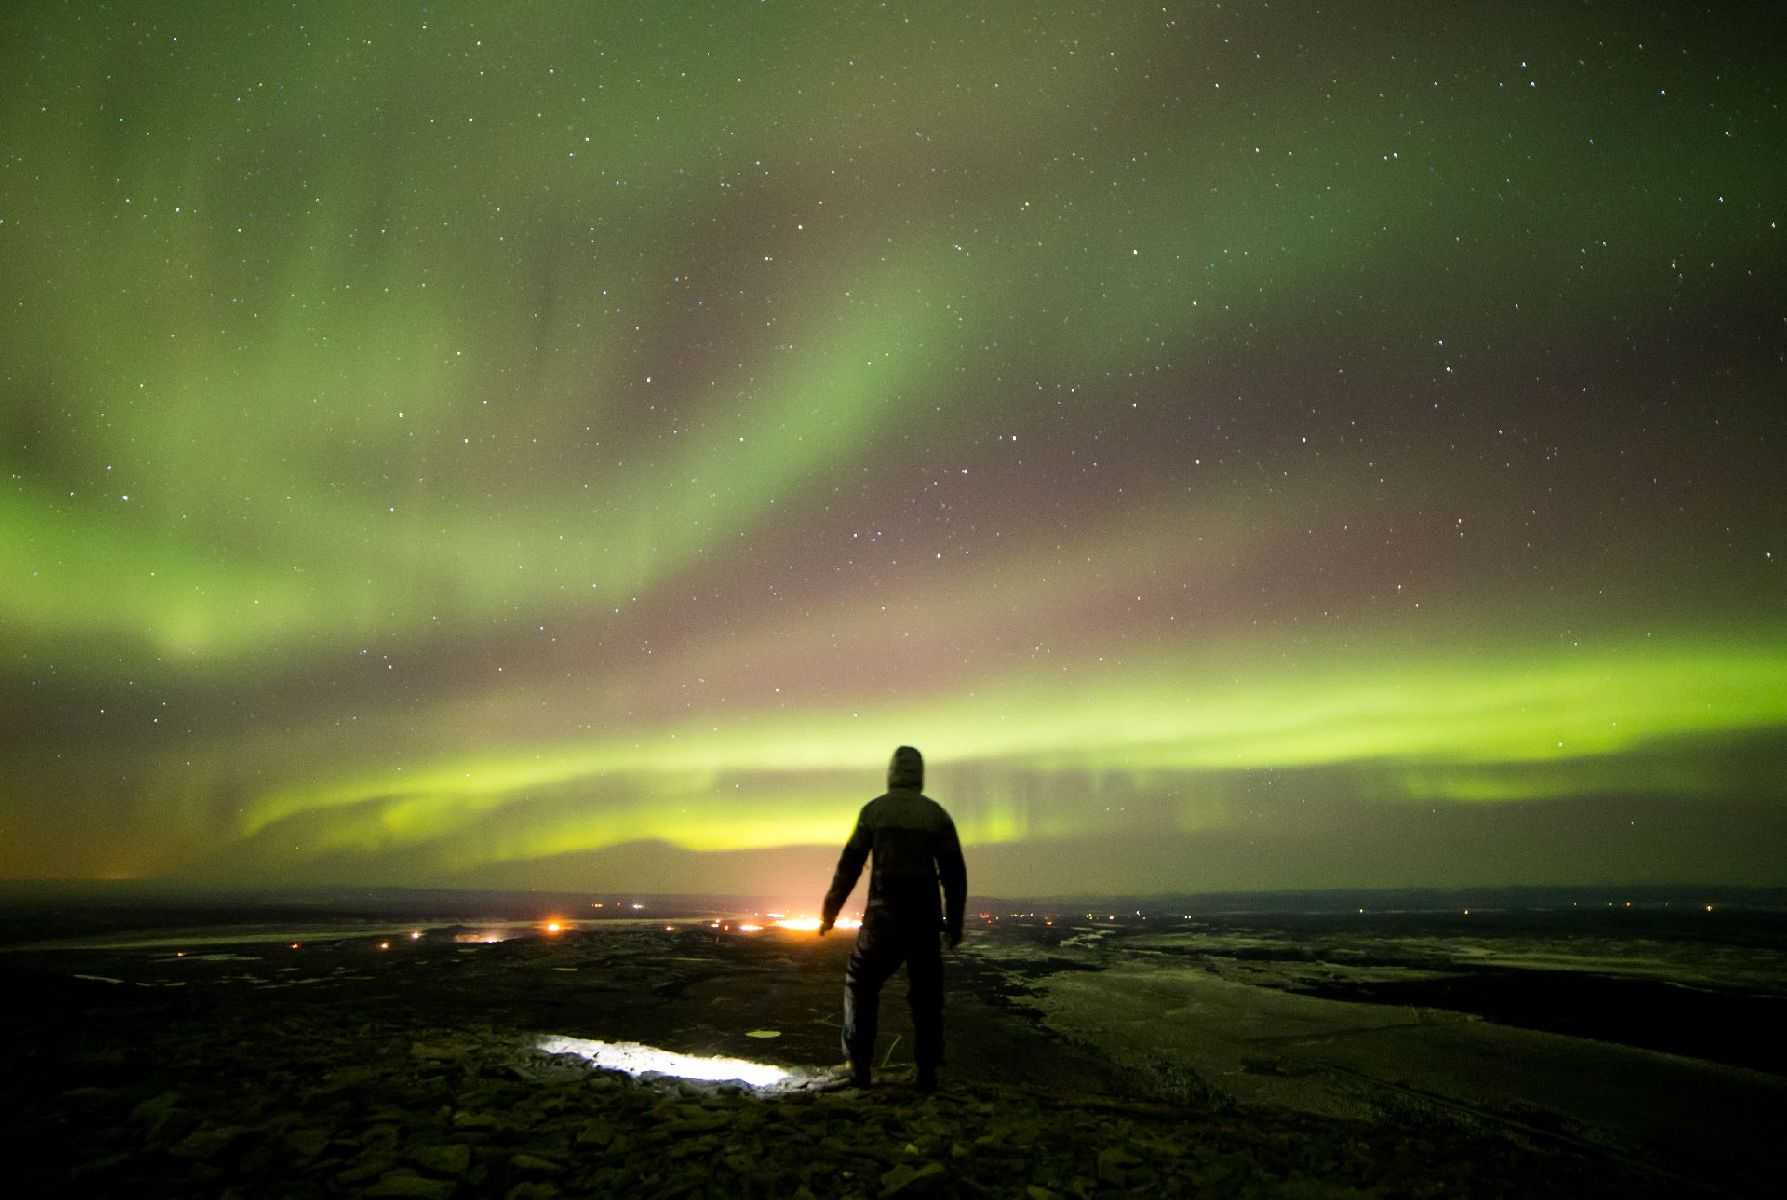 I climbed Donnelly Dome on a windy November night to photograph the aurora over Fort Greely and Delt